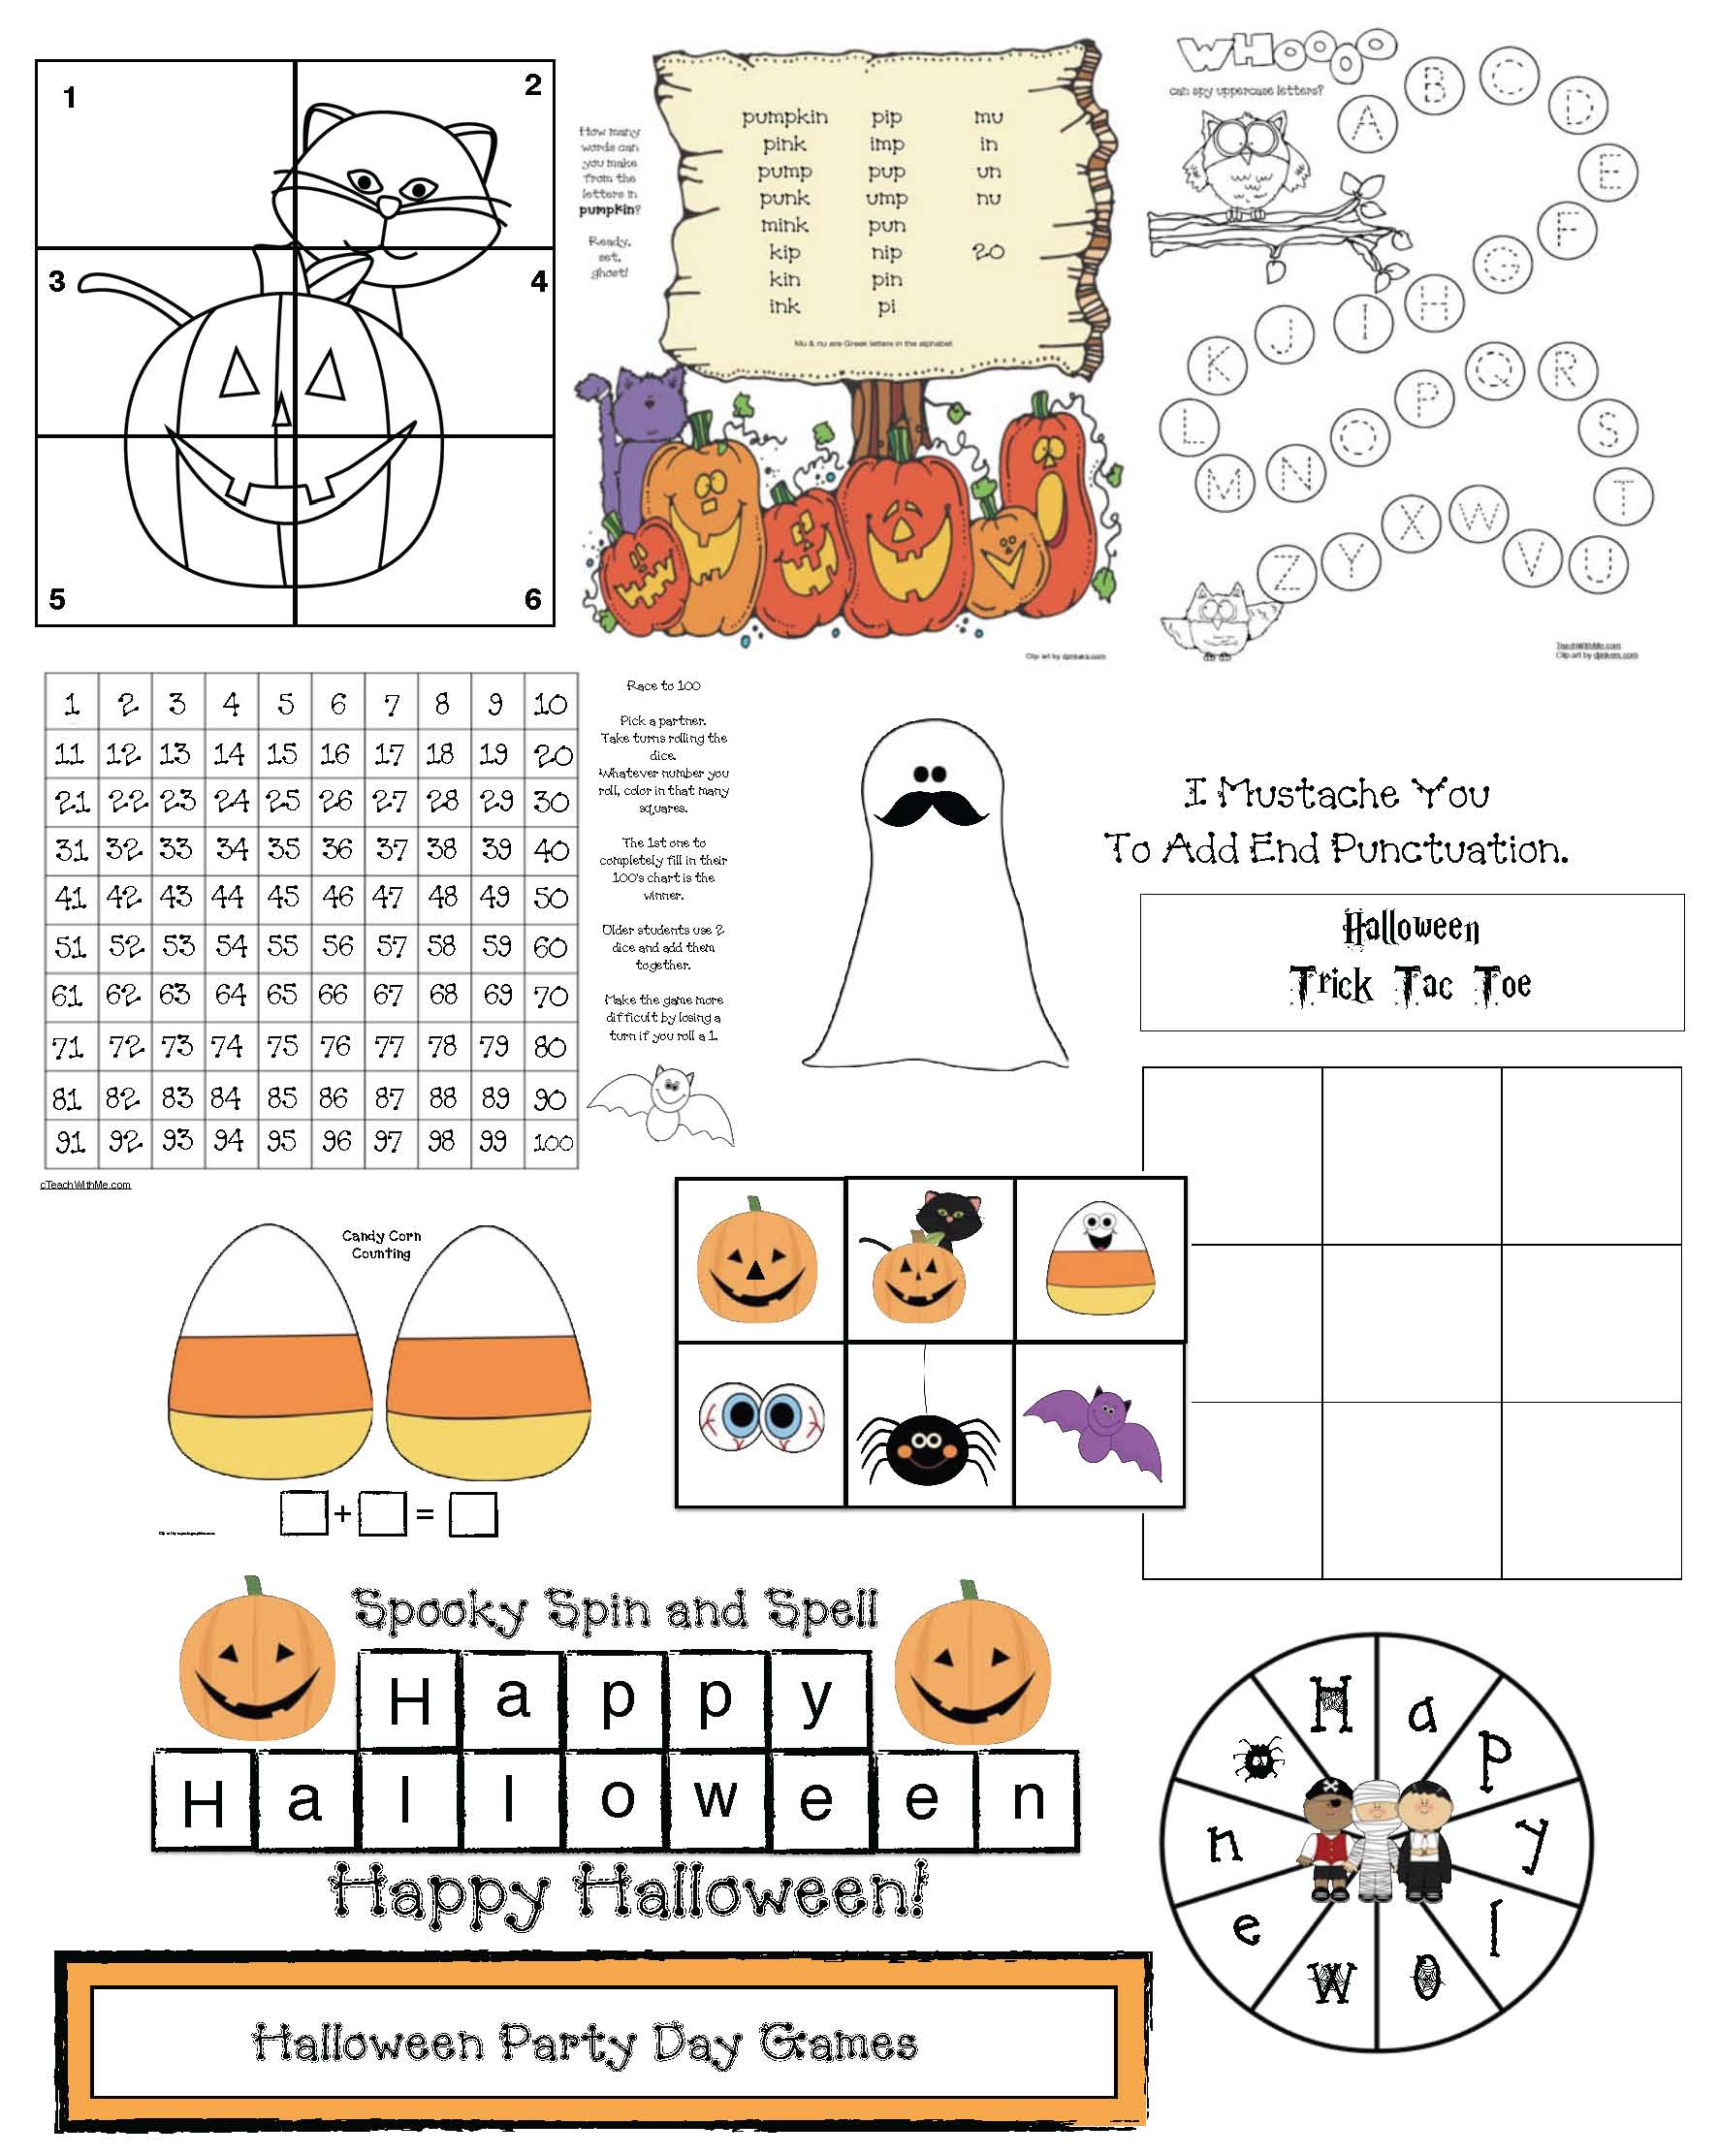 Pages from Ready Set Ghost Halloween games LK